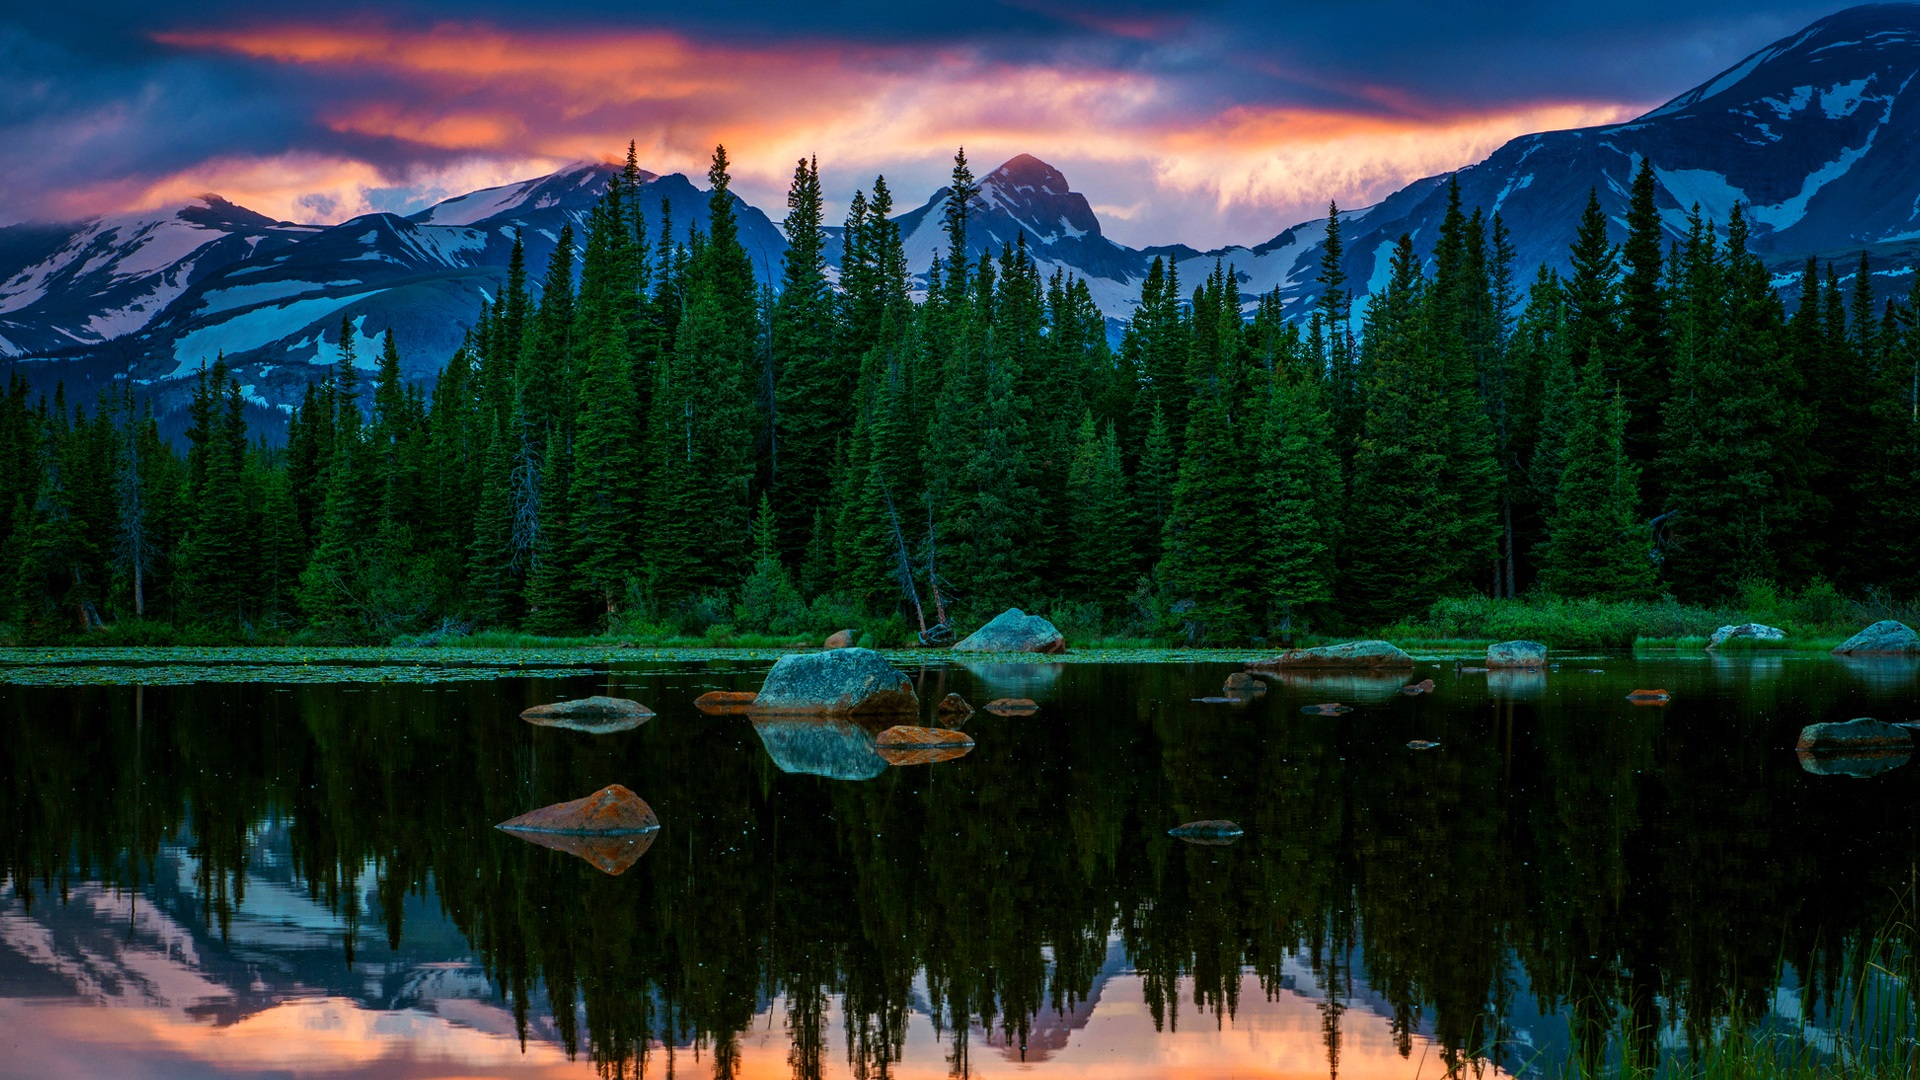 USA-Colorado-Red-Rock-Lakes-lake-mountain-forest-sunset_1920x1080.jpg